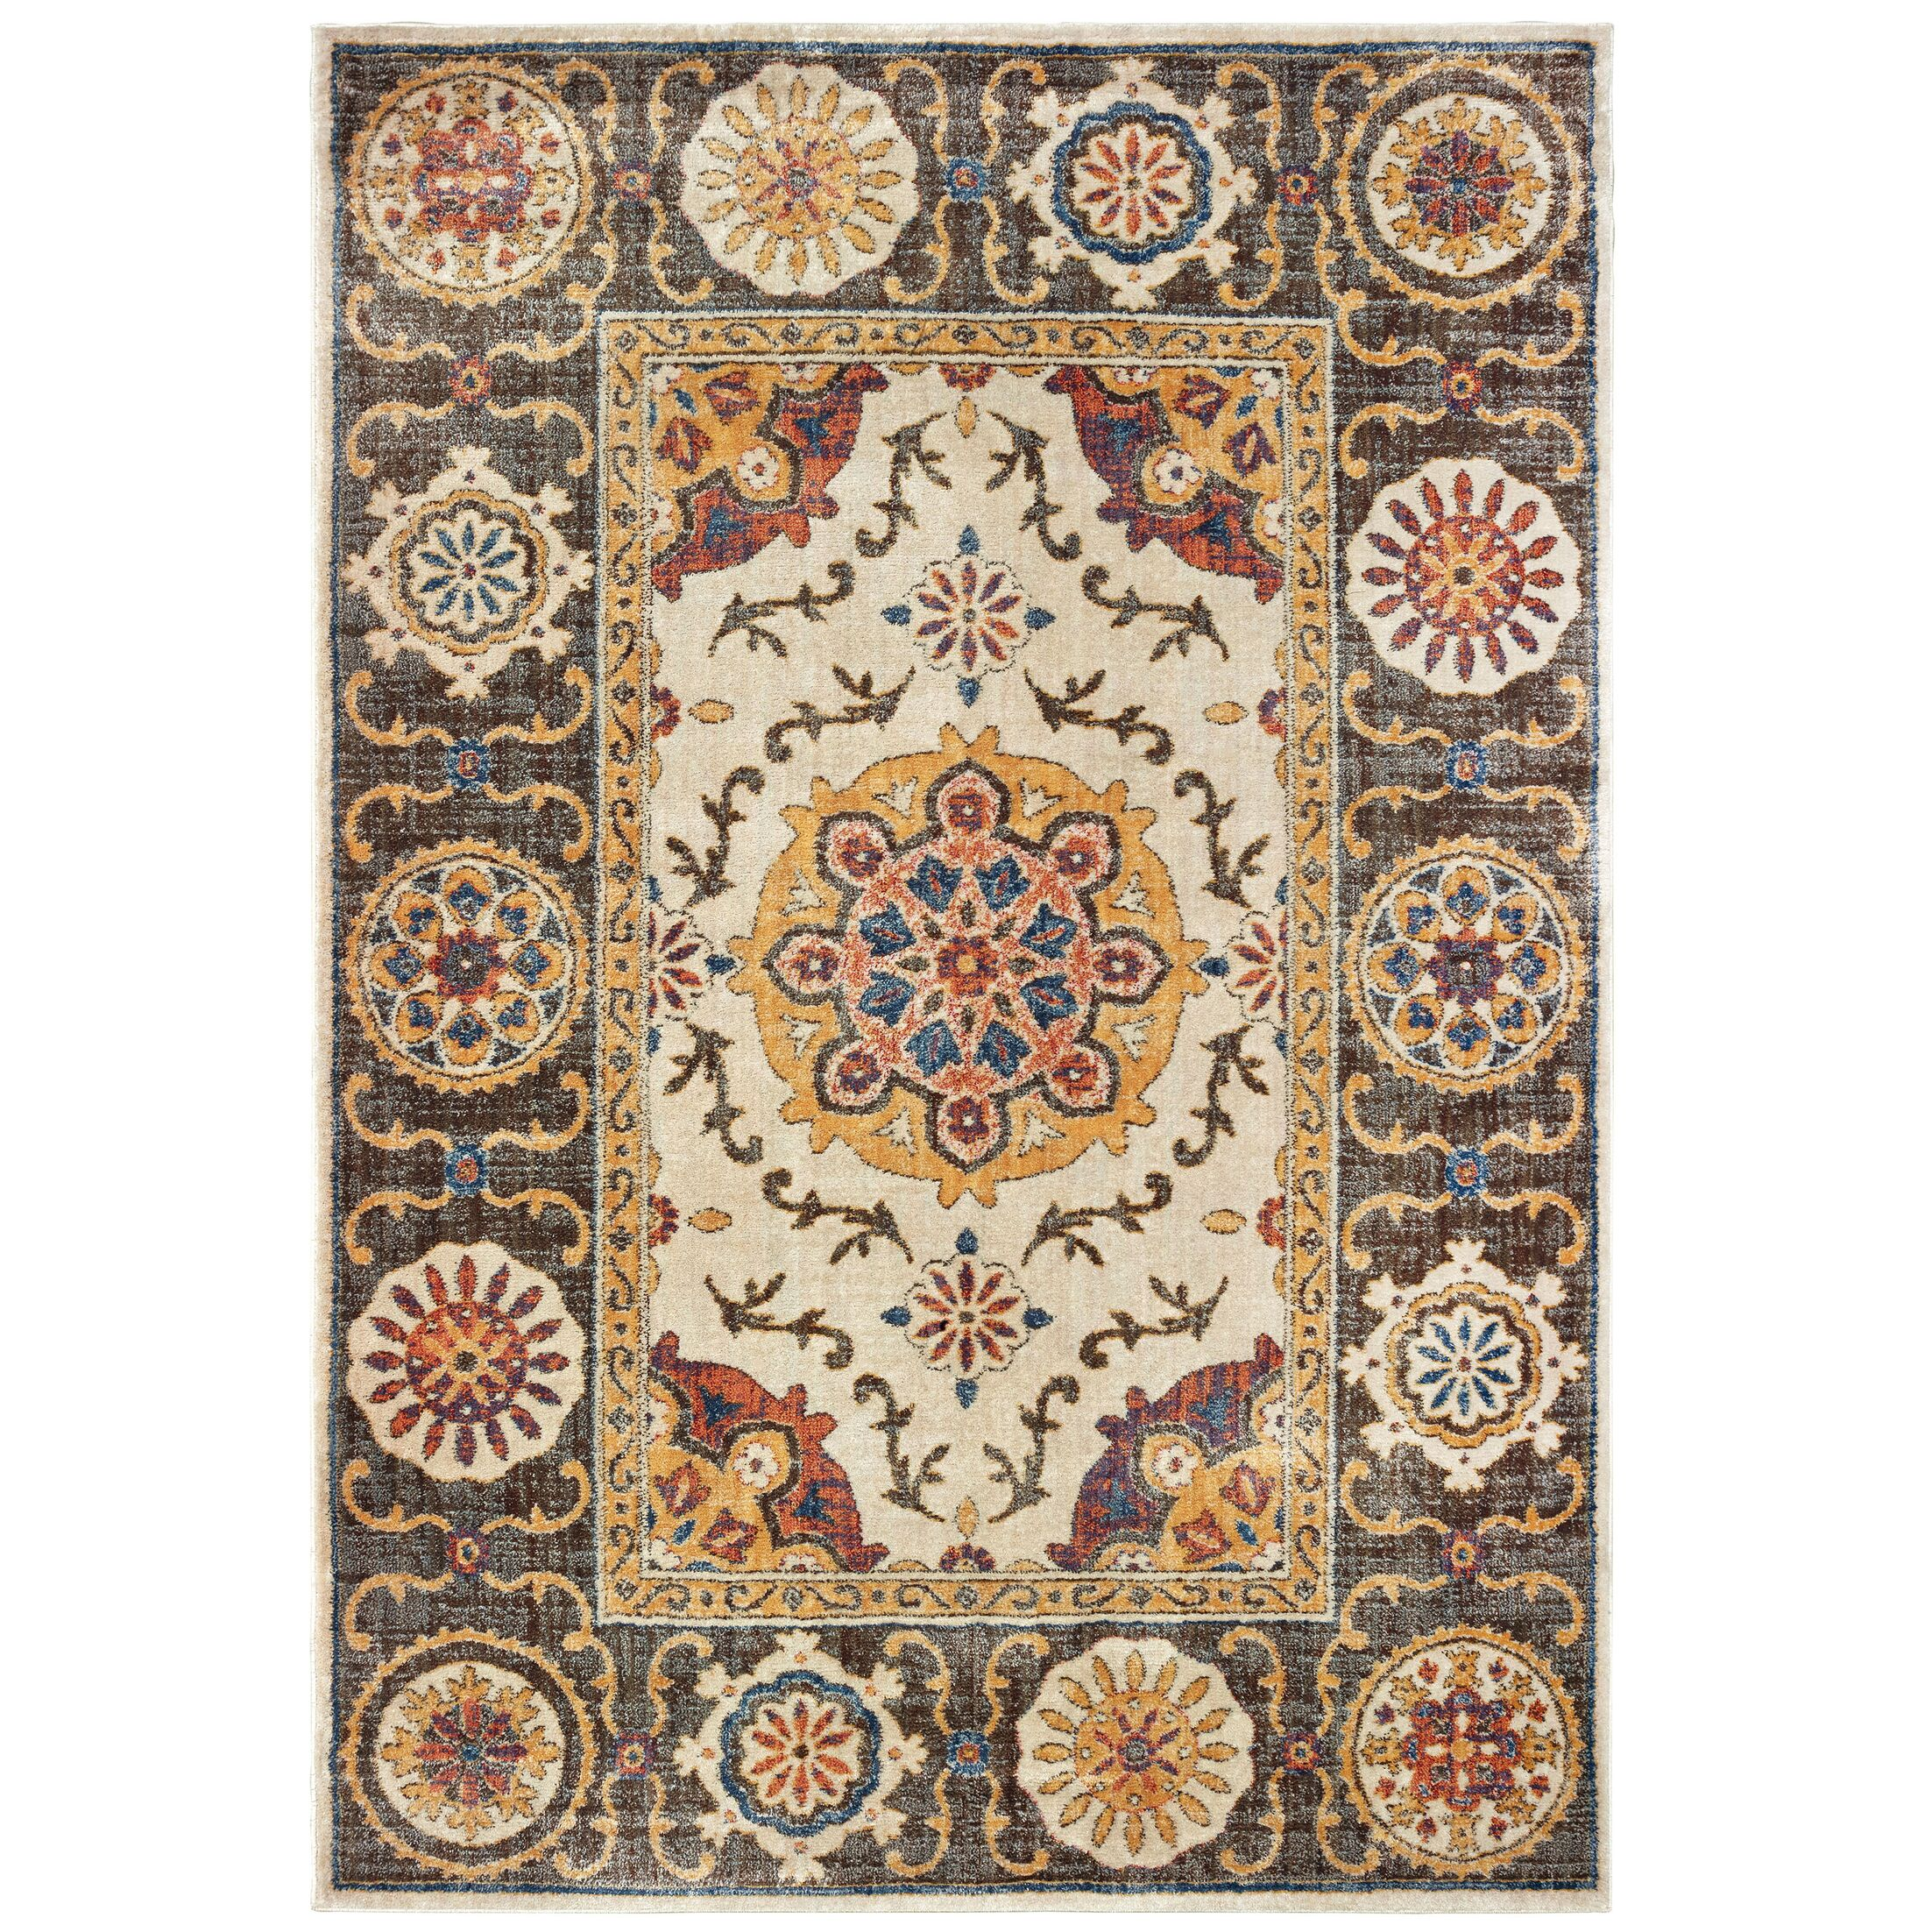 Pateros Tribal Medallions Ivory/Brown Area Rug Rug Size: Rectangle 3'10